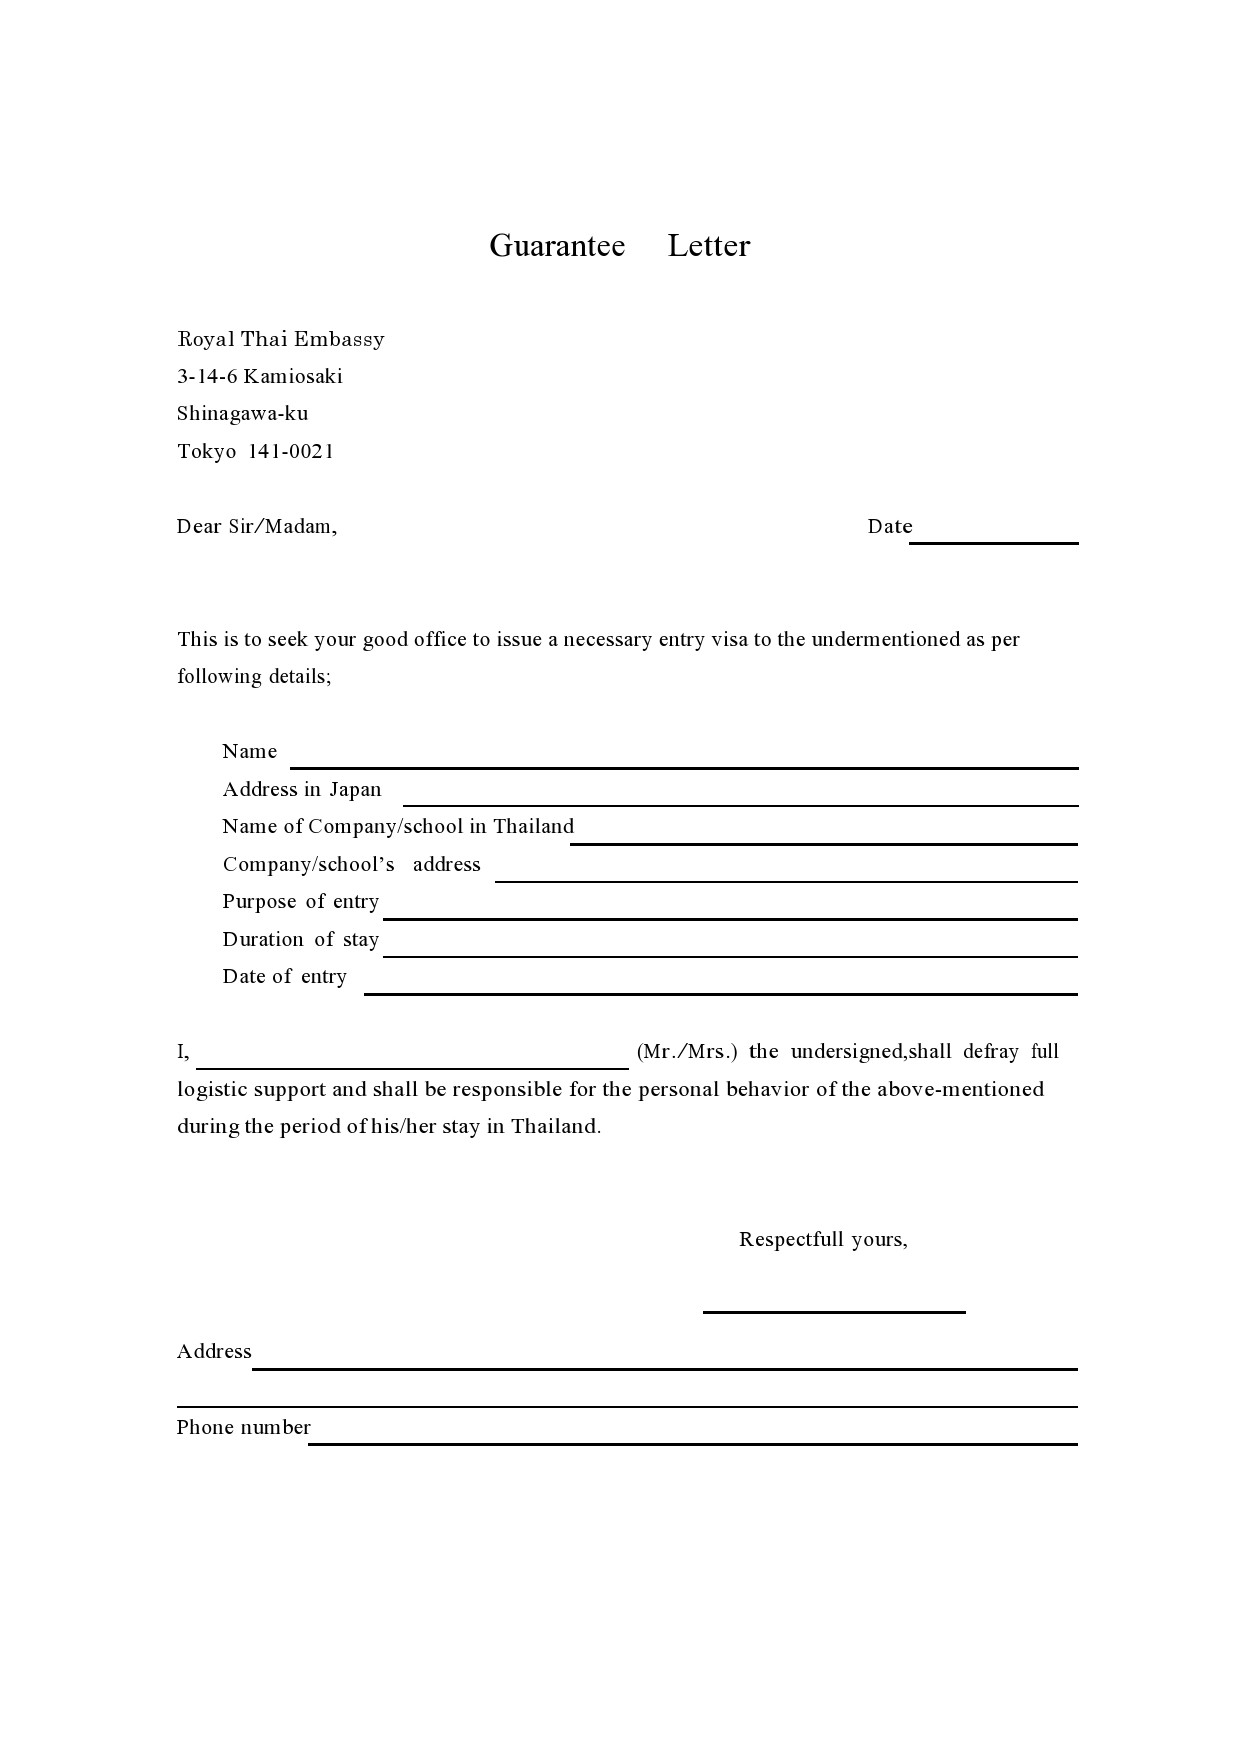 Free letter of guarantee 41